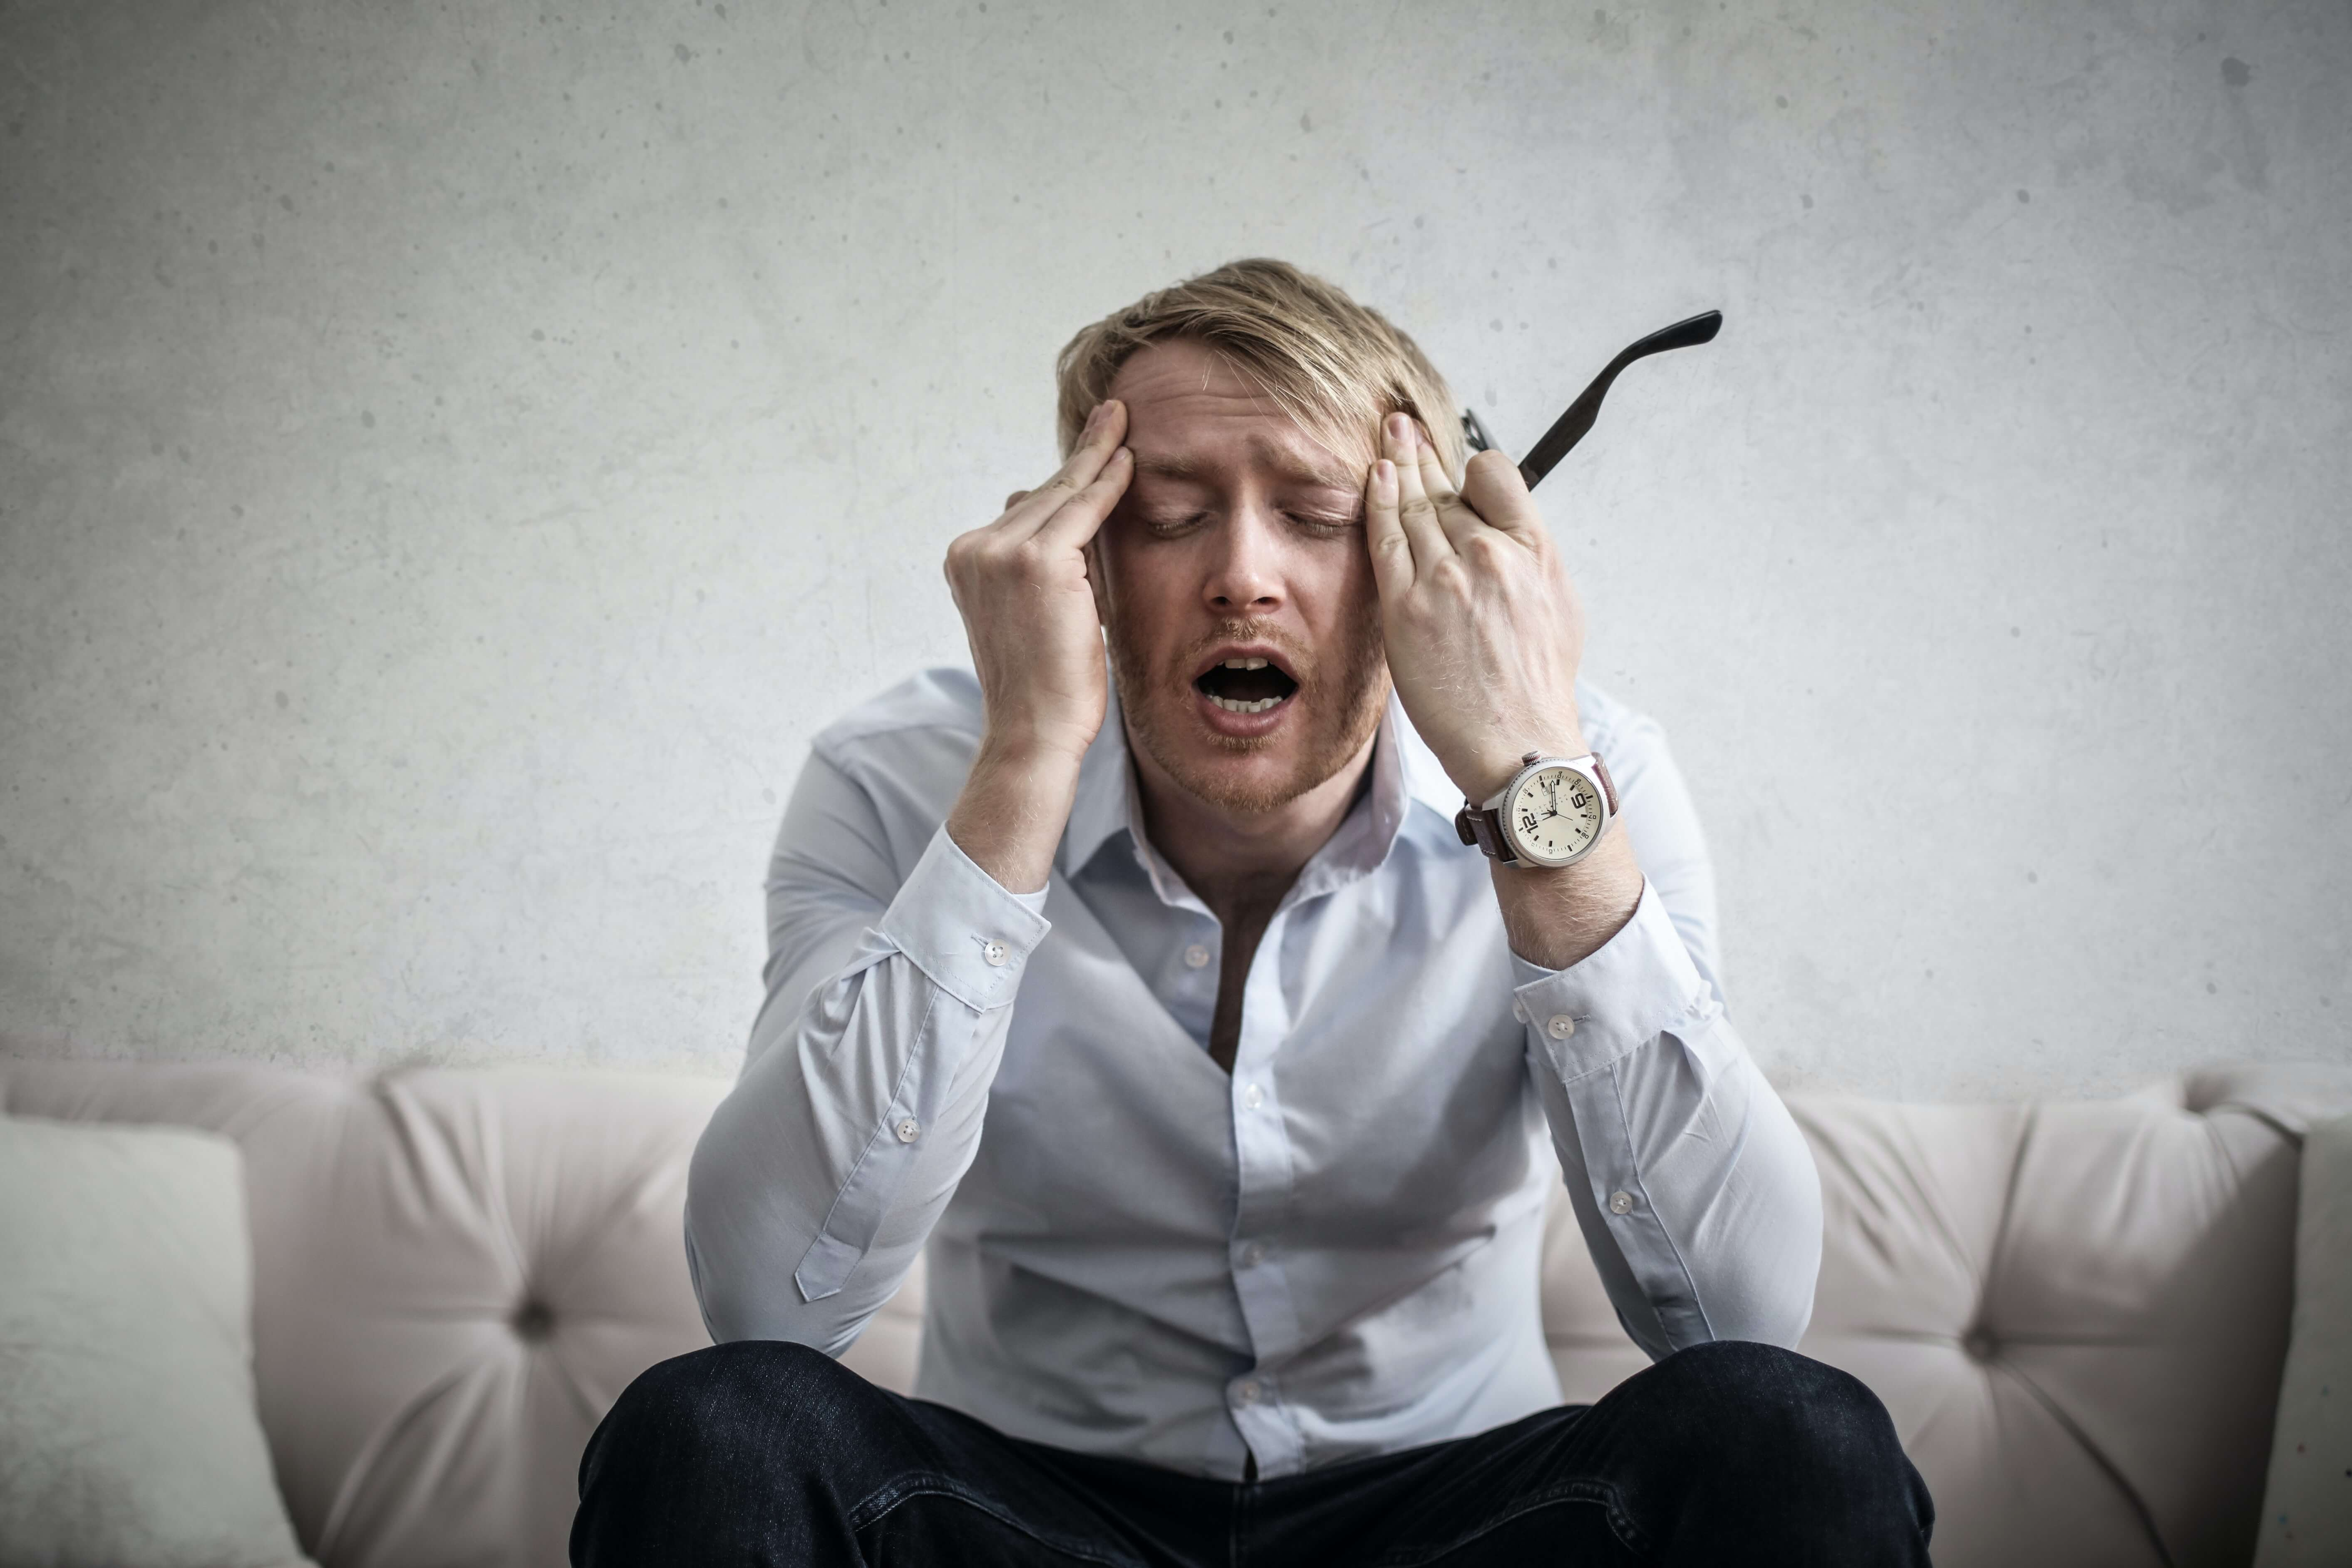 Man puts his hands on his head in frustration